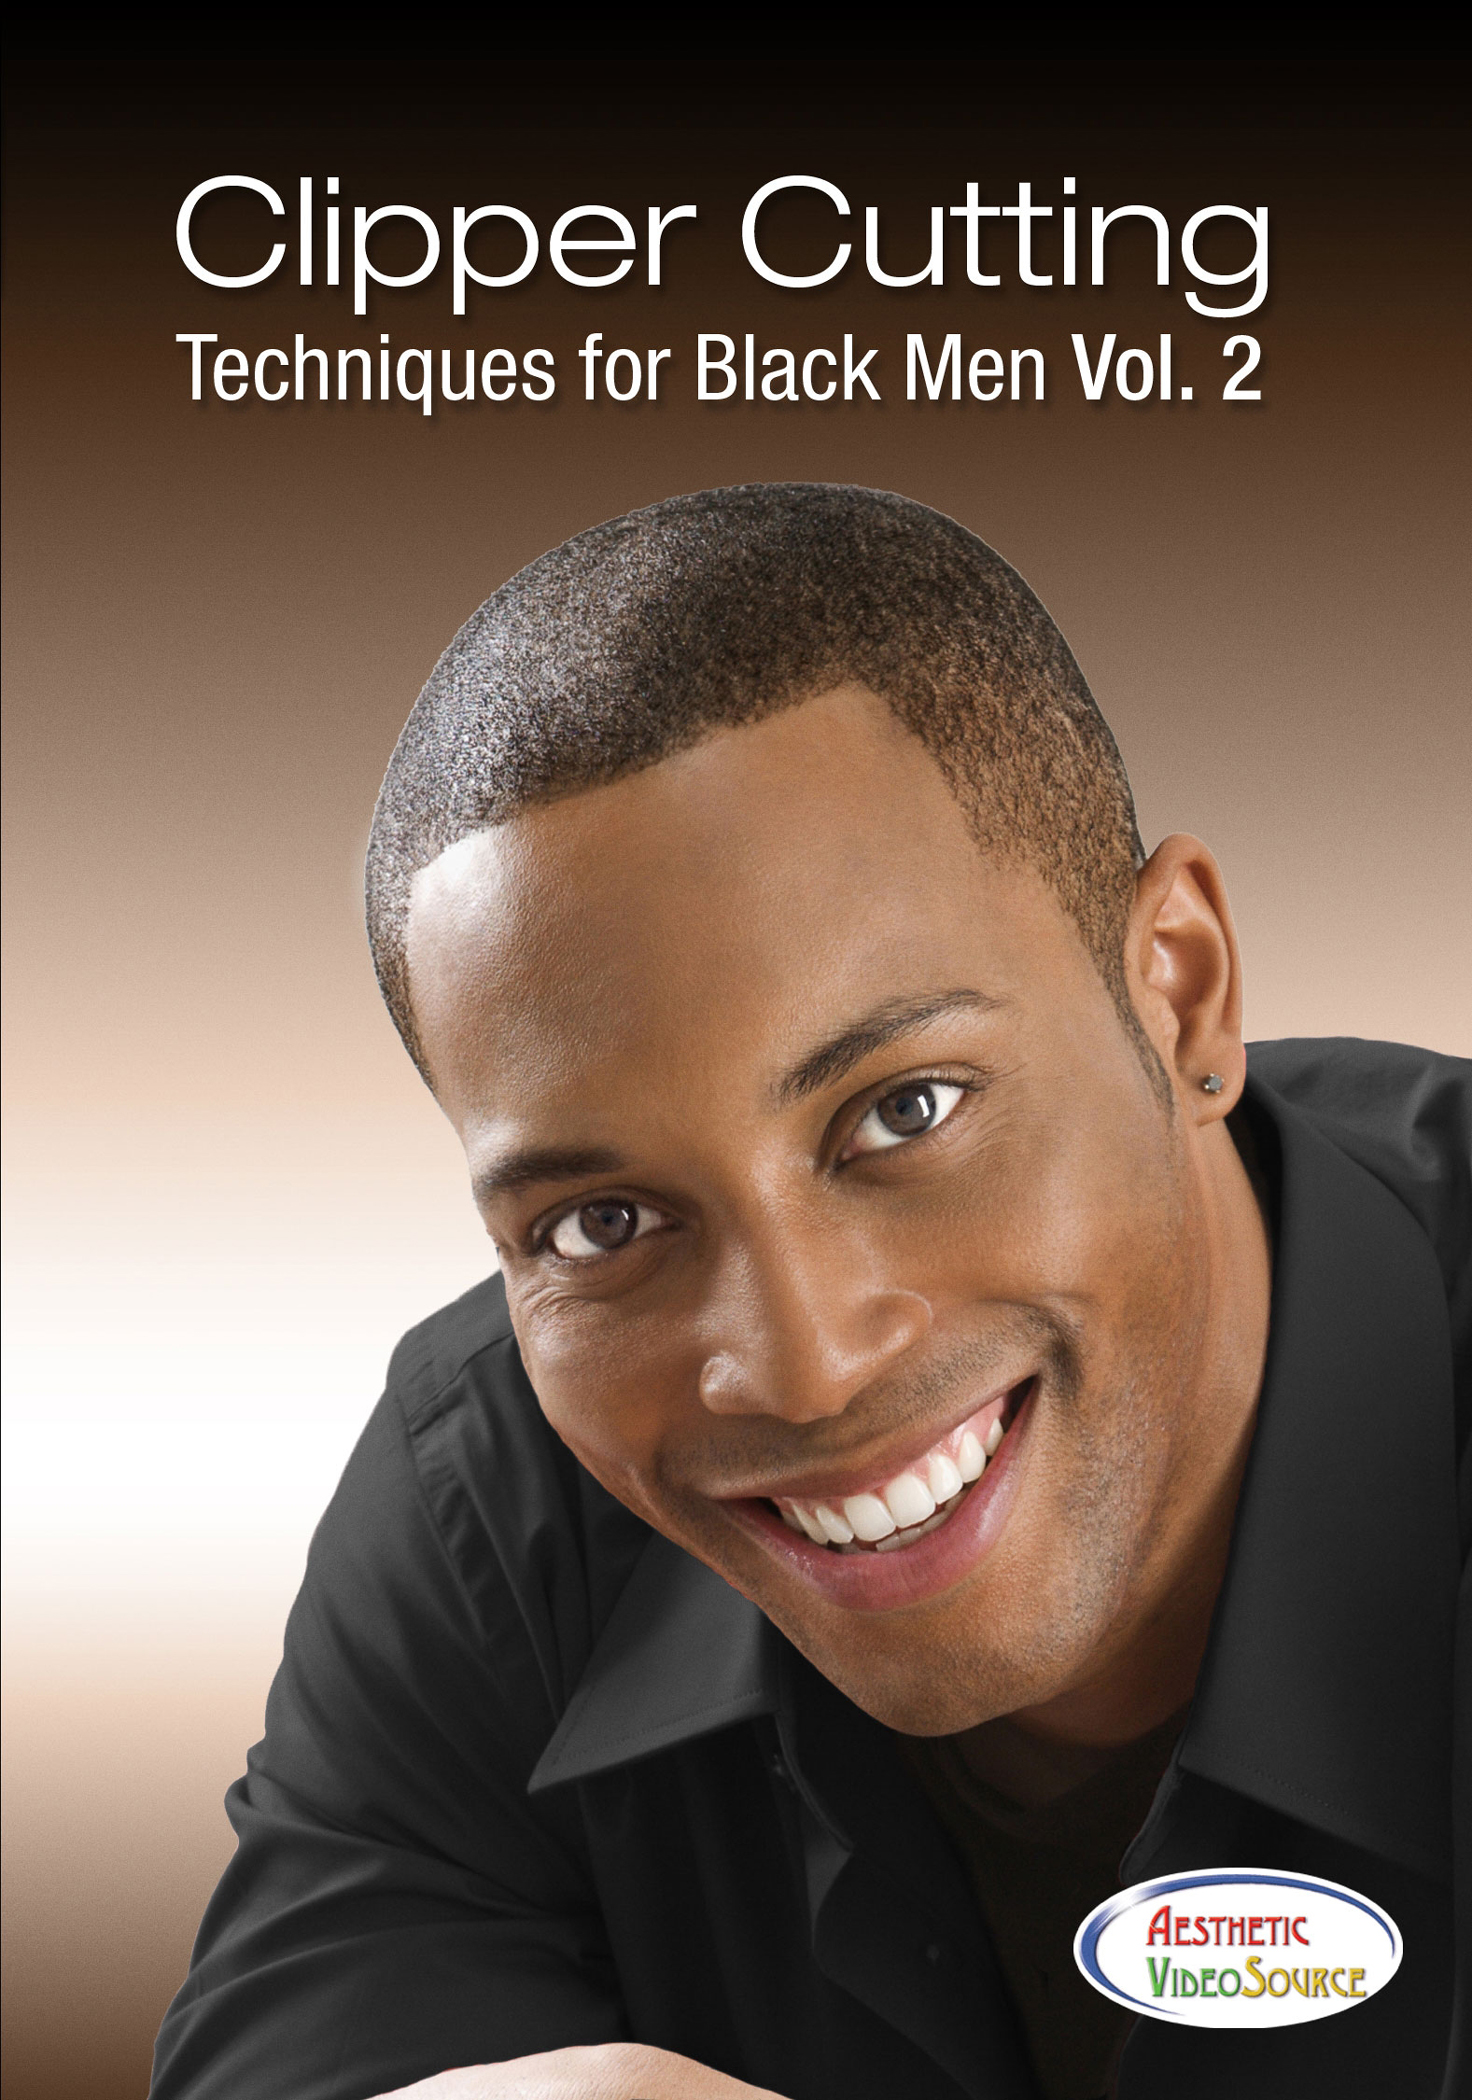 Learn How To Cut Hair With 'Clipper Cutting Techniques for Black Men ...